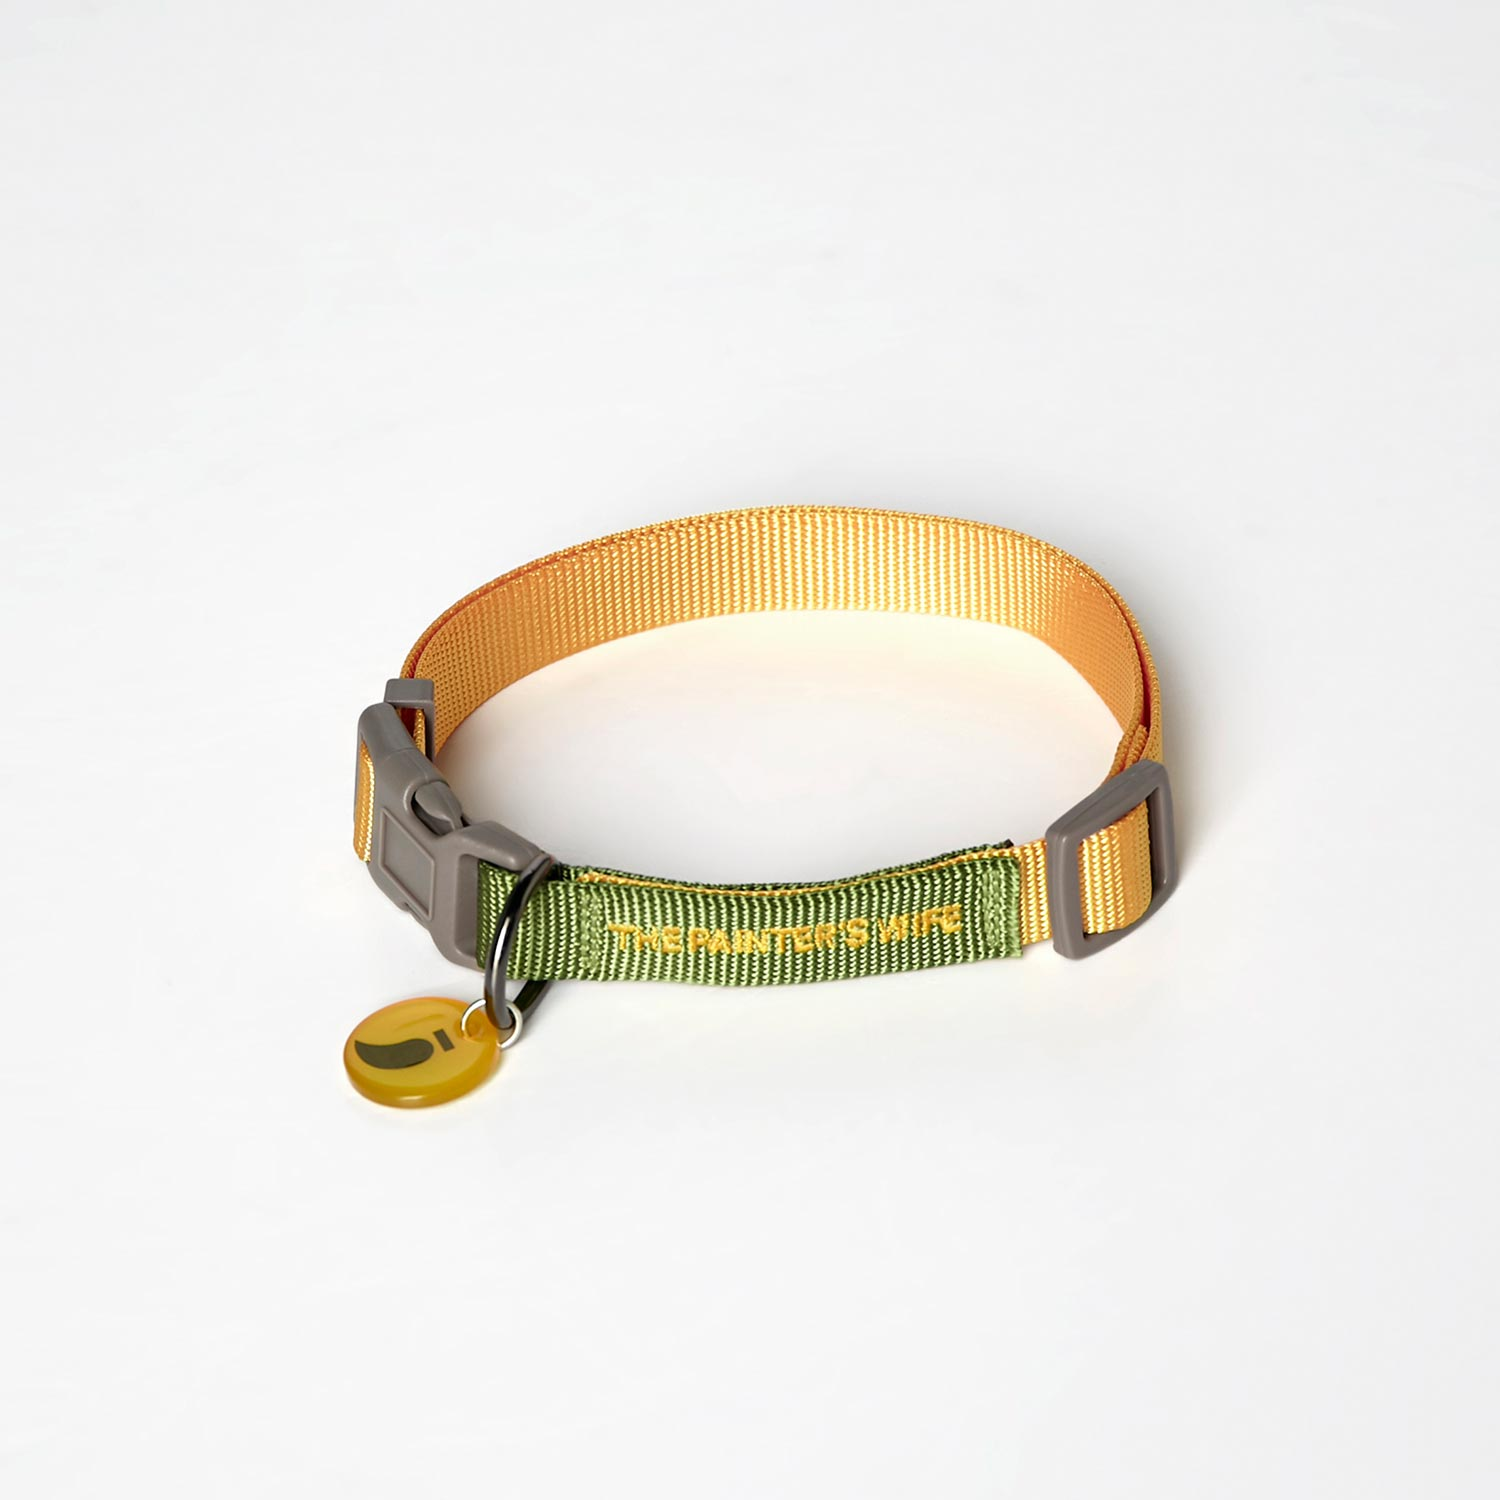 COLLAR SONIA - KHAKI/YELLOW